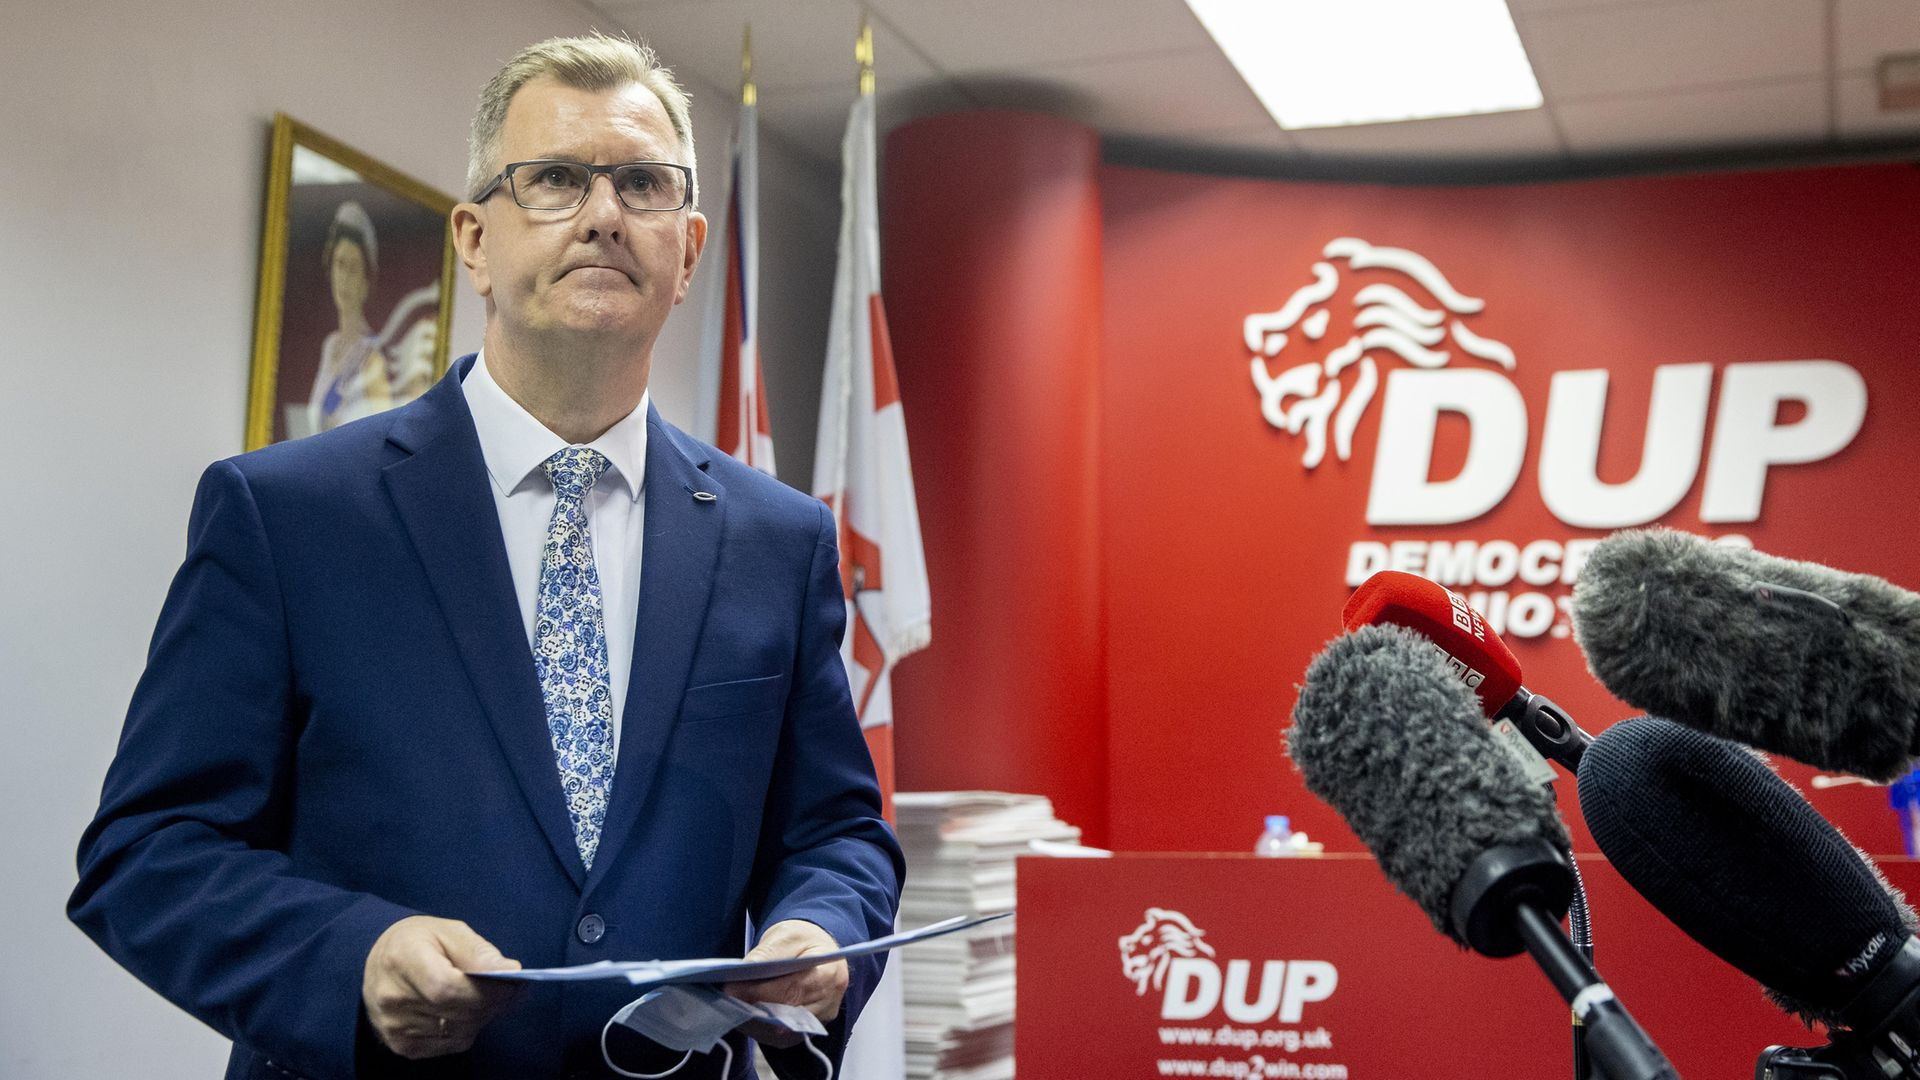 DUP MP for Lagan Valley Sir Jeffrey Donaldson, launches his campaign to become leader of the DUP at the constituency office of DUP MP Gavin Robinson in east Belfast - Credit: PA